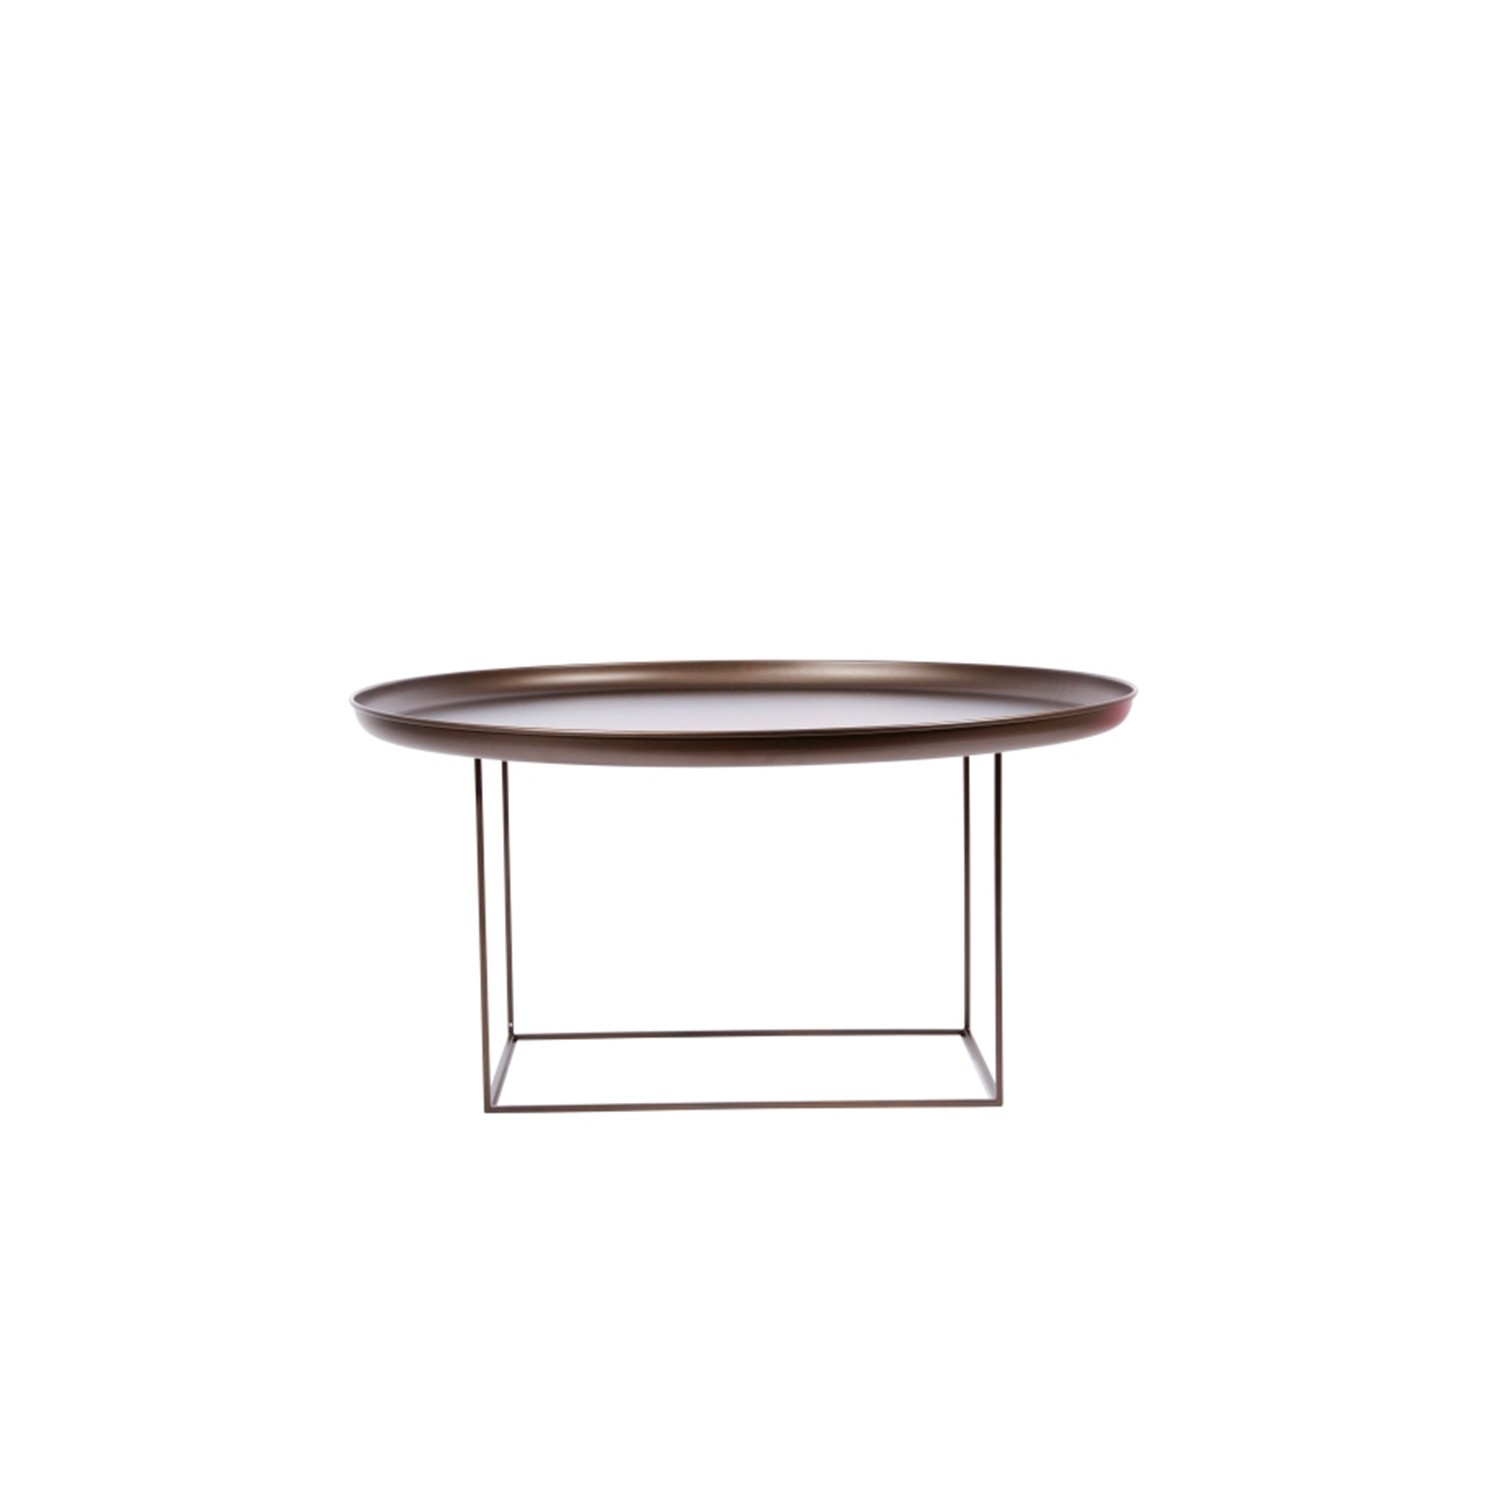 Duke Coffee Table Large - The Duke tables are a series of multi-functional side and coffee tables with a spun metal tray loosely placed on top of a metal frame. The tables come in small, medium and large and can easily be adapted to fit your needs, with the medium size particularly functional. The base can be rotated onto its different faces to create three different table heights, making them suitable to fit any height of sofa or to be used as a bedside table. When all three sizes are placed together they create a nice landscape that compliments any sofa.  | Matter of Stuff